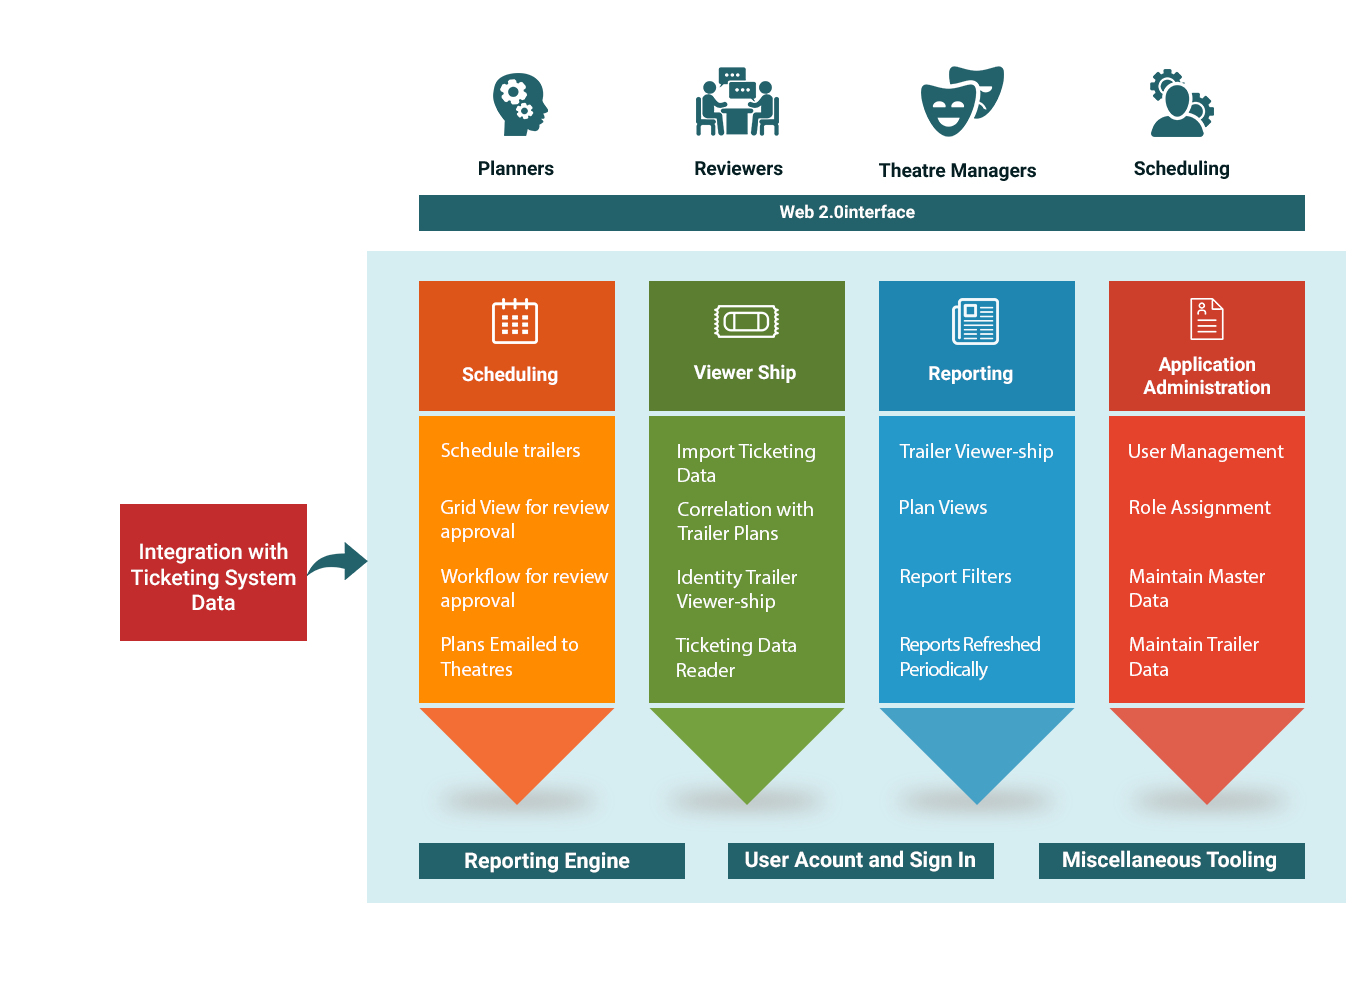 Baryons' Trailer Campaign Management tool offers a strategic approach at capturing realistic data to drive subsequent marketing campaigns.